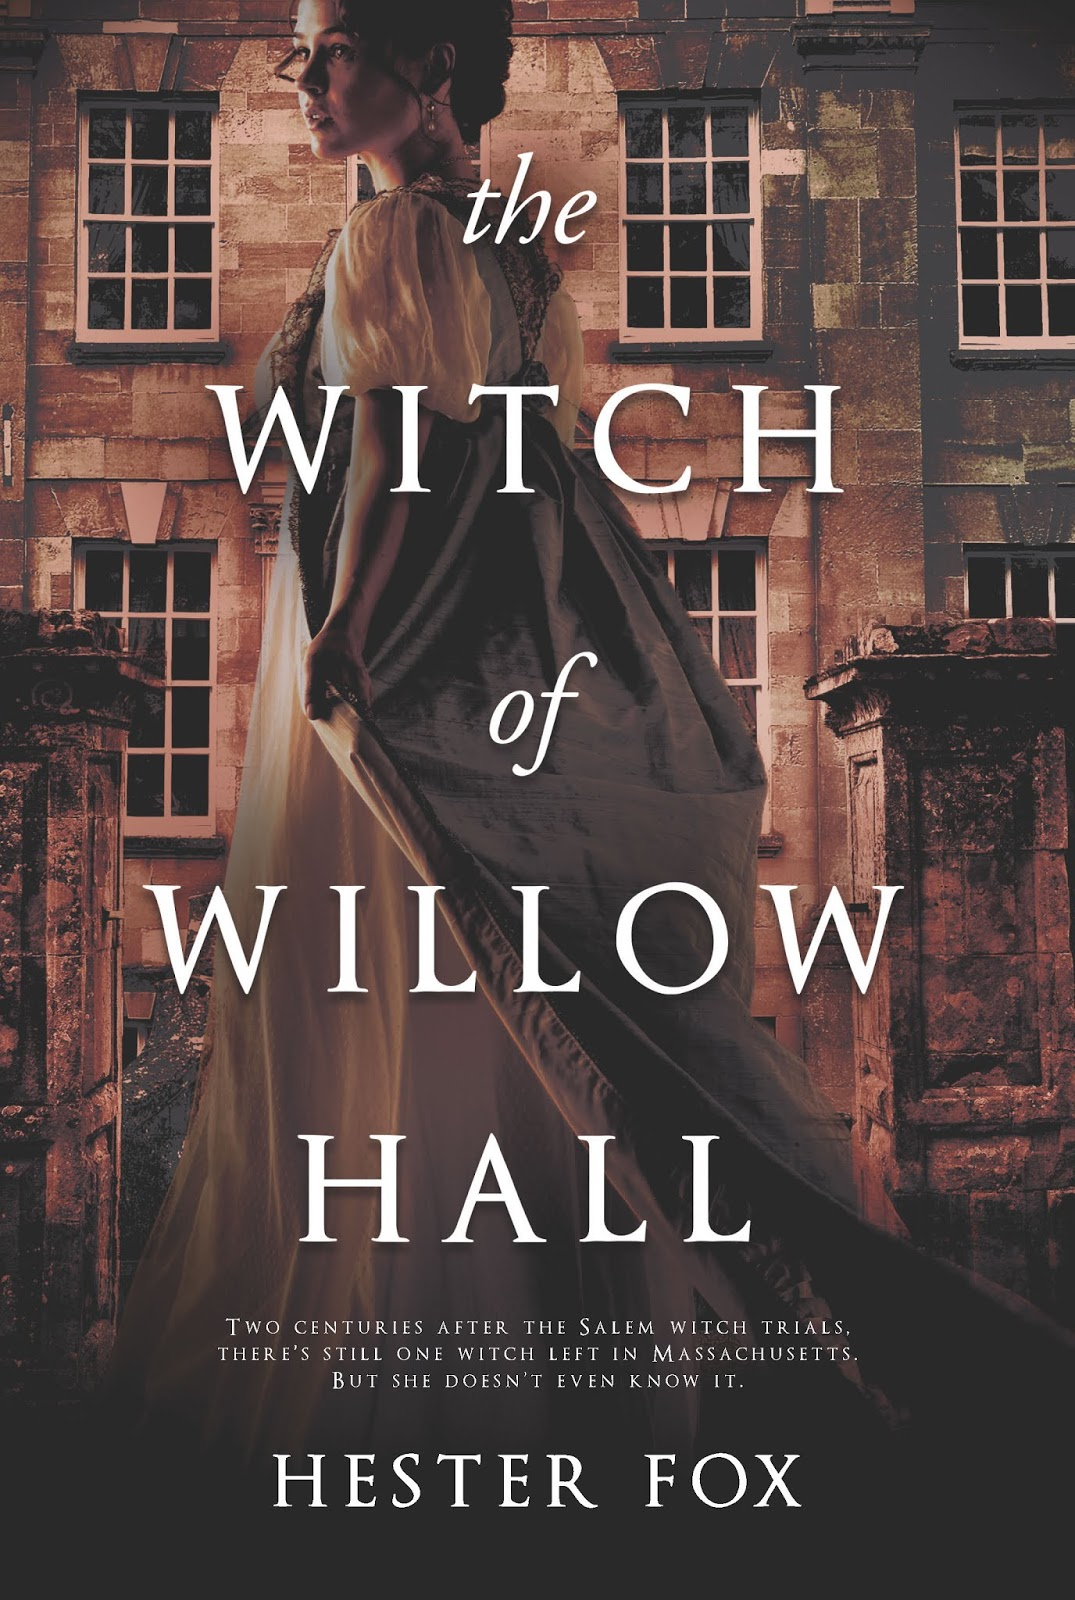 YA Bound Book Tours: Blog Tour Kick-Off: The Witch of Willow Hall by